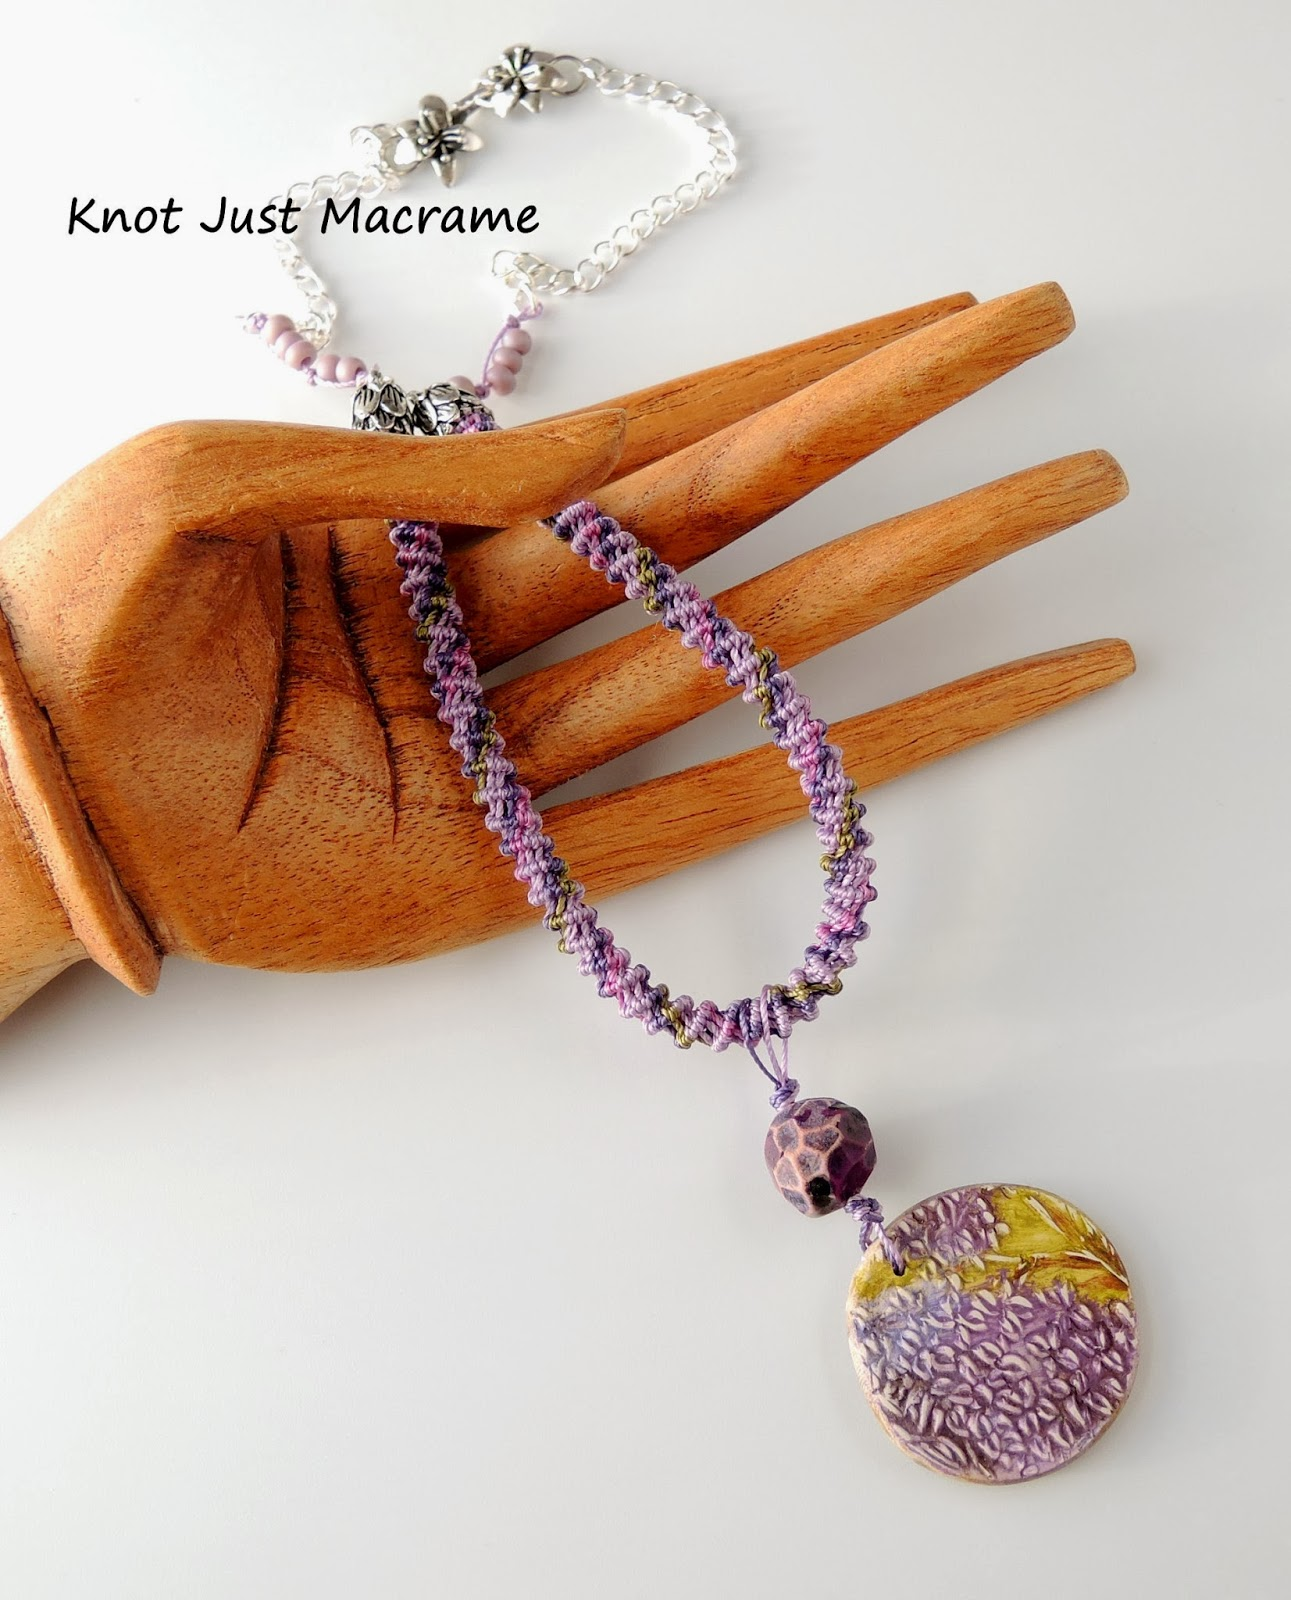 Knotted spiral micro macrame necklace by Sherri Stokey of Knot Just Macrame